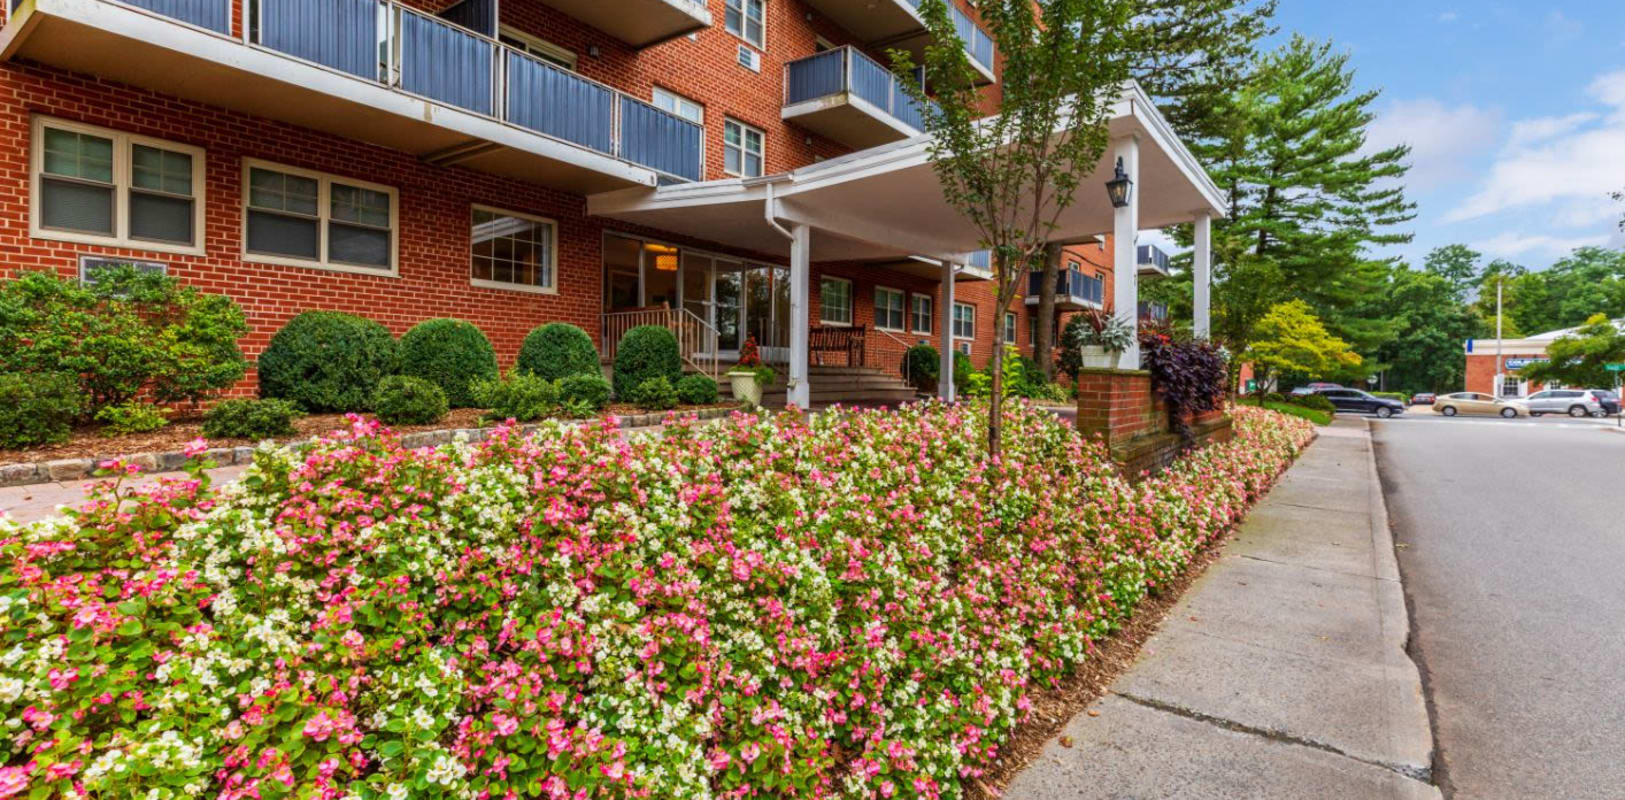 Lush landscaping at Hamilton Court in Morristown, New Jersey